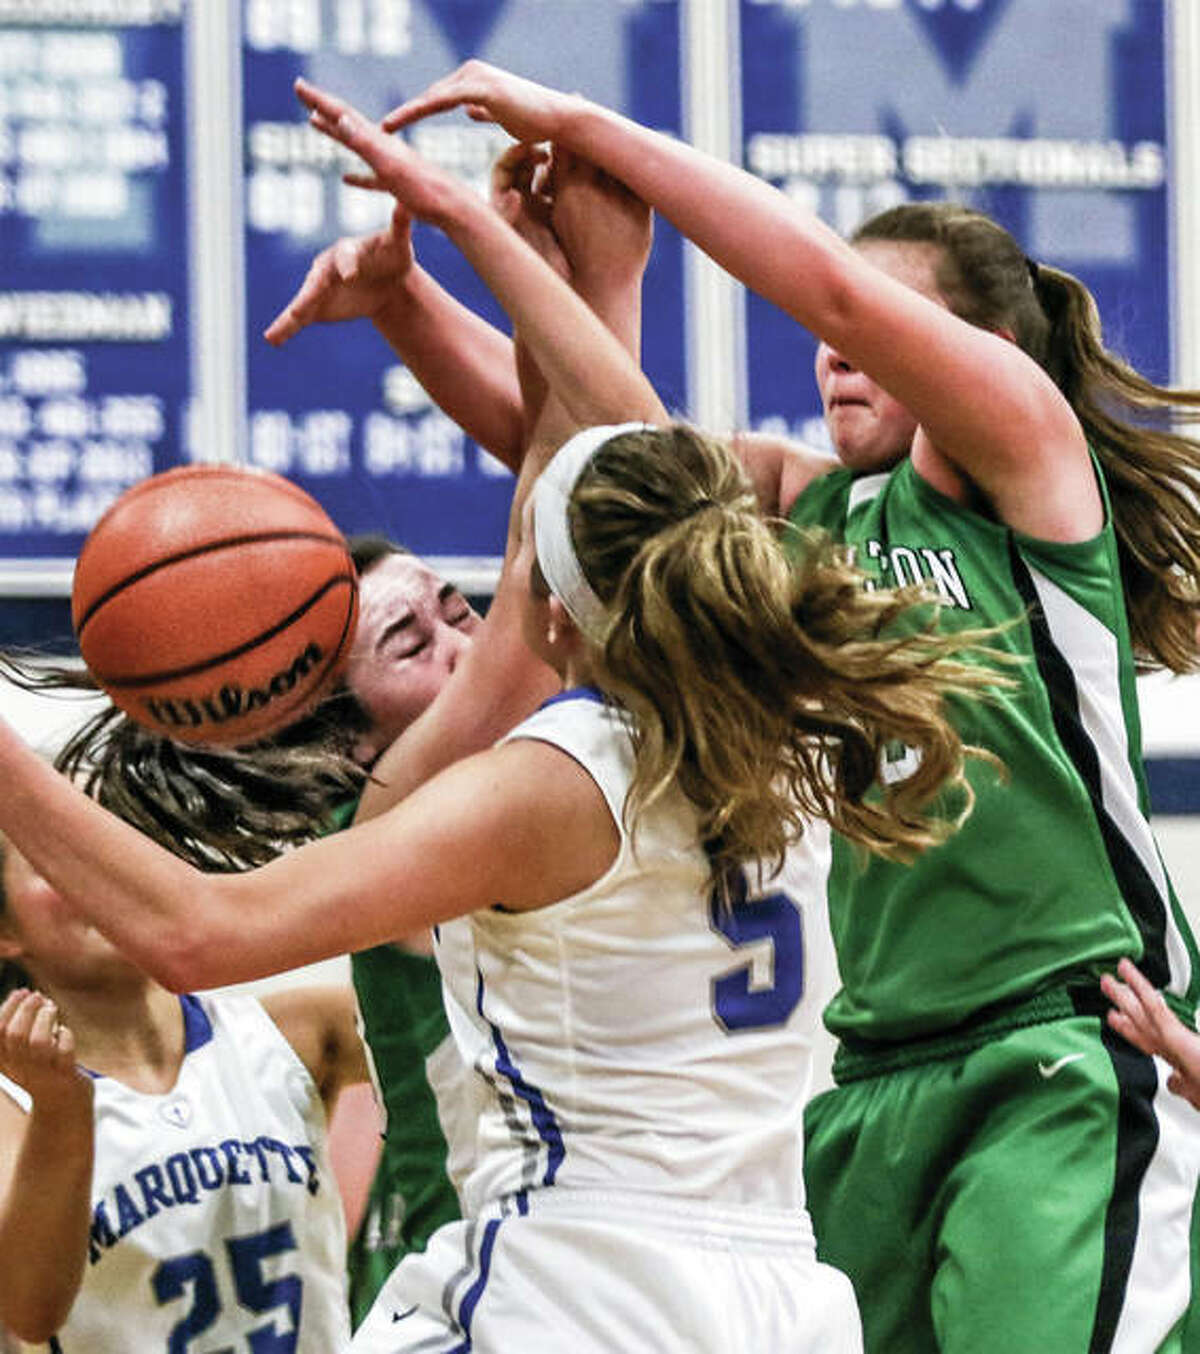 Marquette Catholic's Lila Snider (5), Payton Connors (25) join Carrolton's Ava Uhles and Claire Williams (right) in a scrum for a rebound in a Jan. 2 game in Alton. The Explorers and Hawks met again Monday night at the Carrollton Tourney.